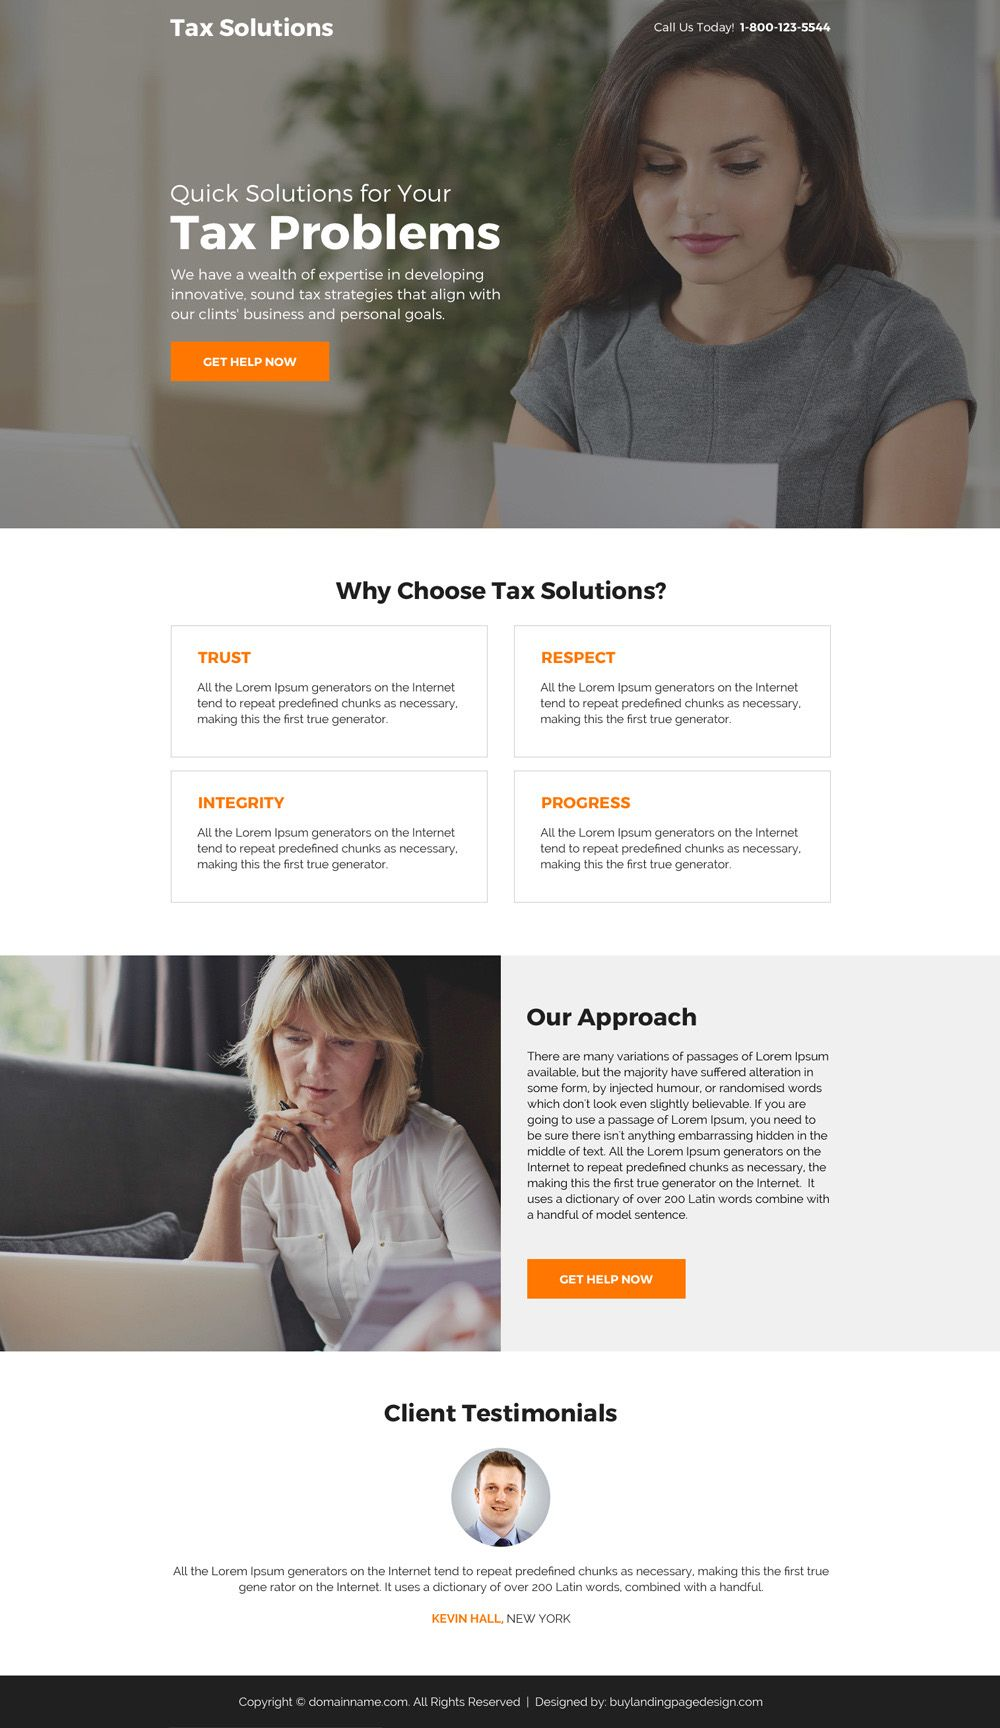 Latest Call To Action Landing Page Designs Buylandingpagedesign Com In 2020 Landing Page Design Page Design Landing Page